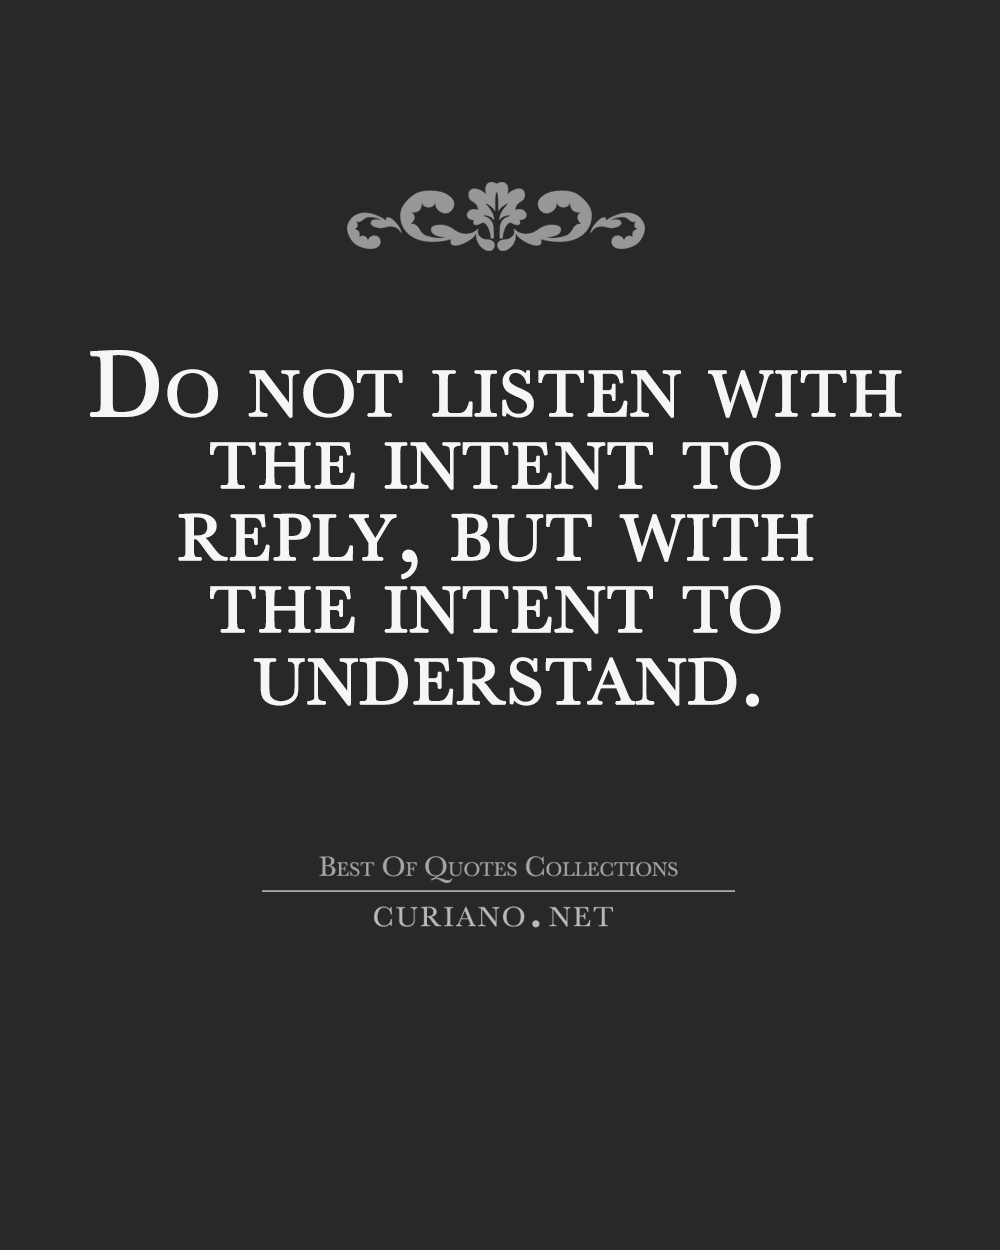 Do not listen with the intent to reply but with the intent to